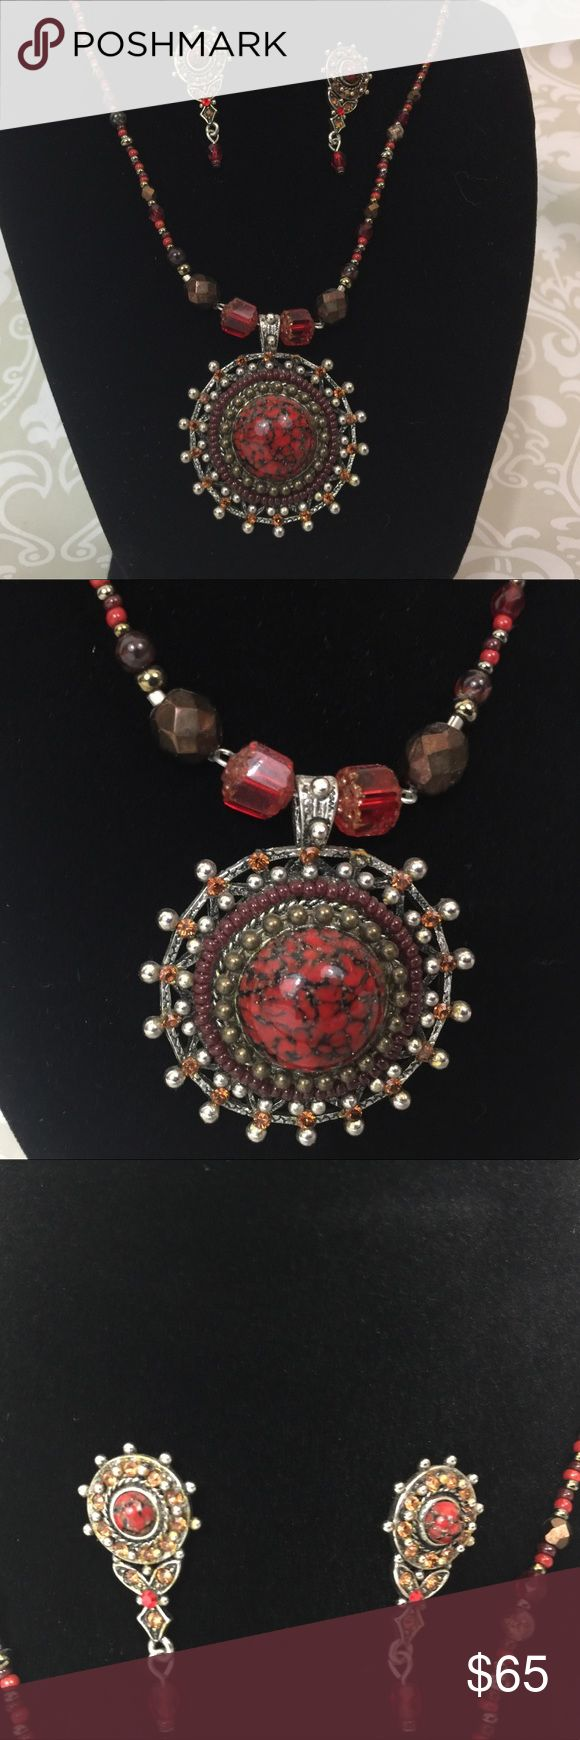 Beautiful F.A.I.T.H. necklace and Earring Set Red and Black Statement Medallion Necklace and Earring Set.   Goes with so much. Colors include red, black, brown, silver. Previously worn, cared for and loved. Excellent condition. Please ask any question you might have.  Reasonable offers welcome.  Bundle for savings.  Thank you for shopping in my closet! Jewelry Necklaces